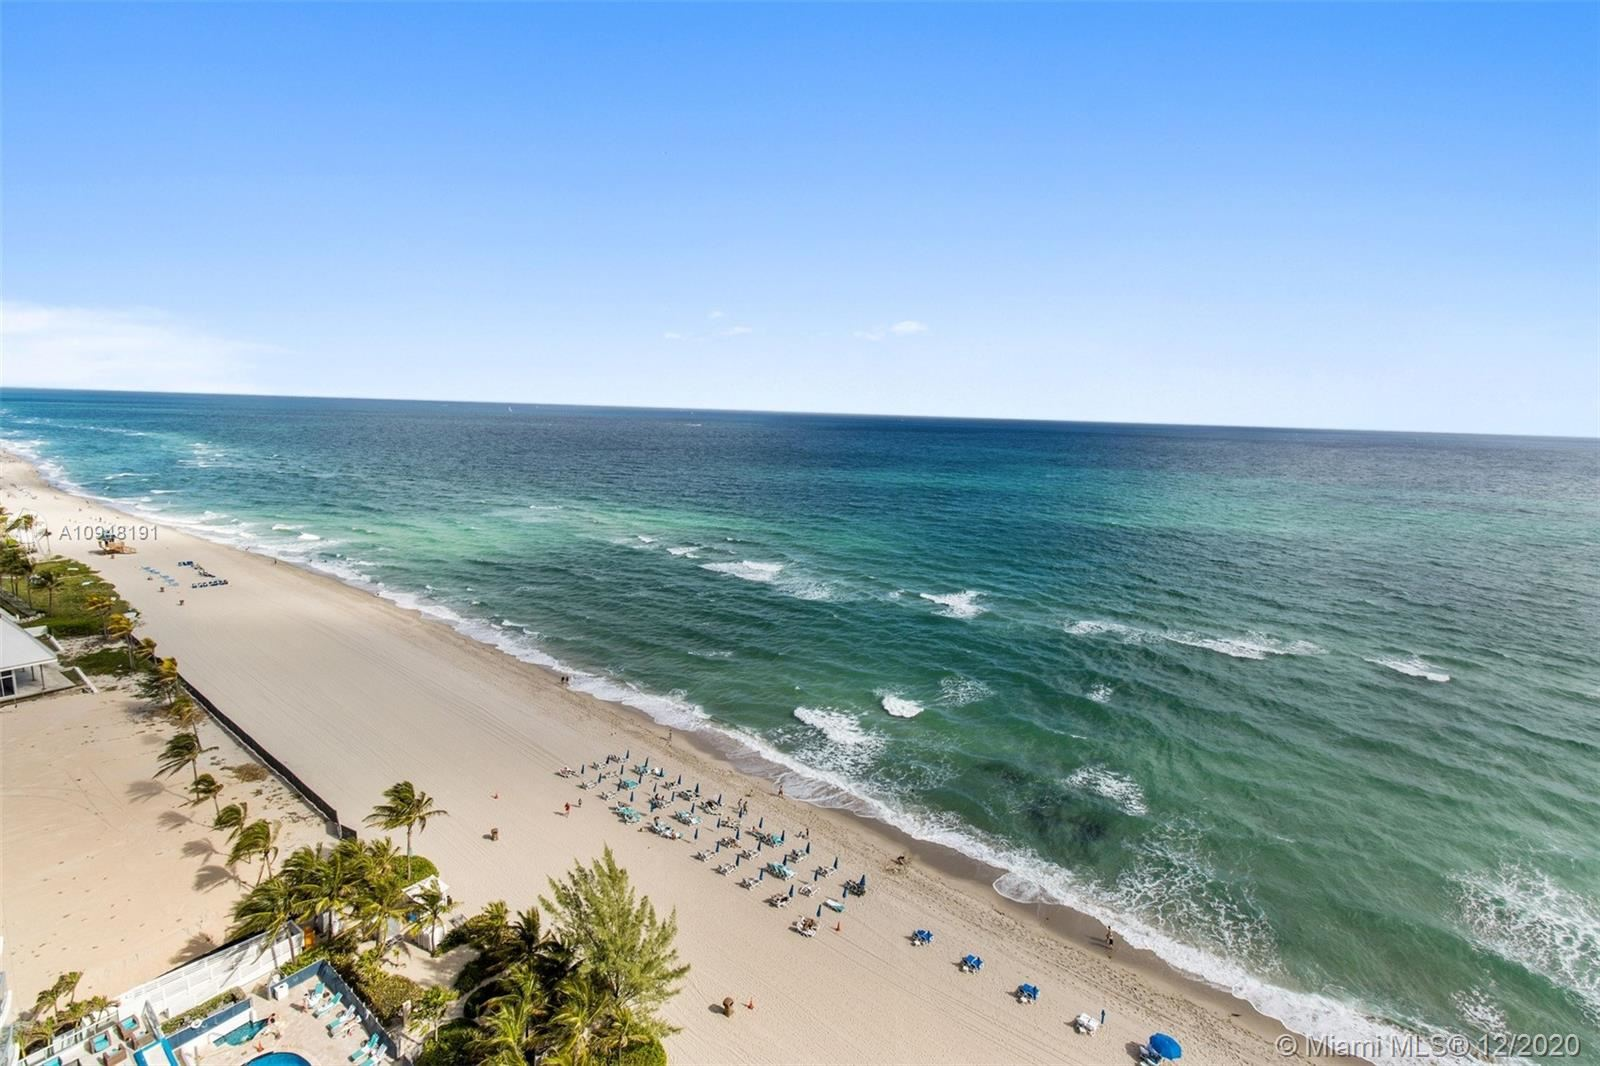 18671 Collins Ave #1801, Sunny Isles, FL 33160 - #: A10948191